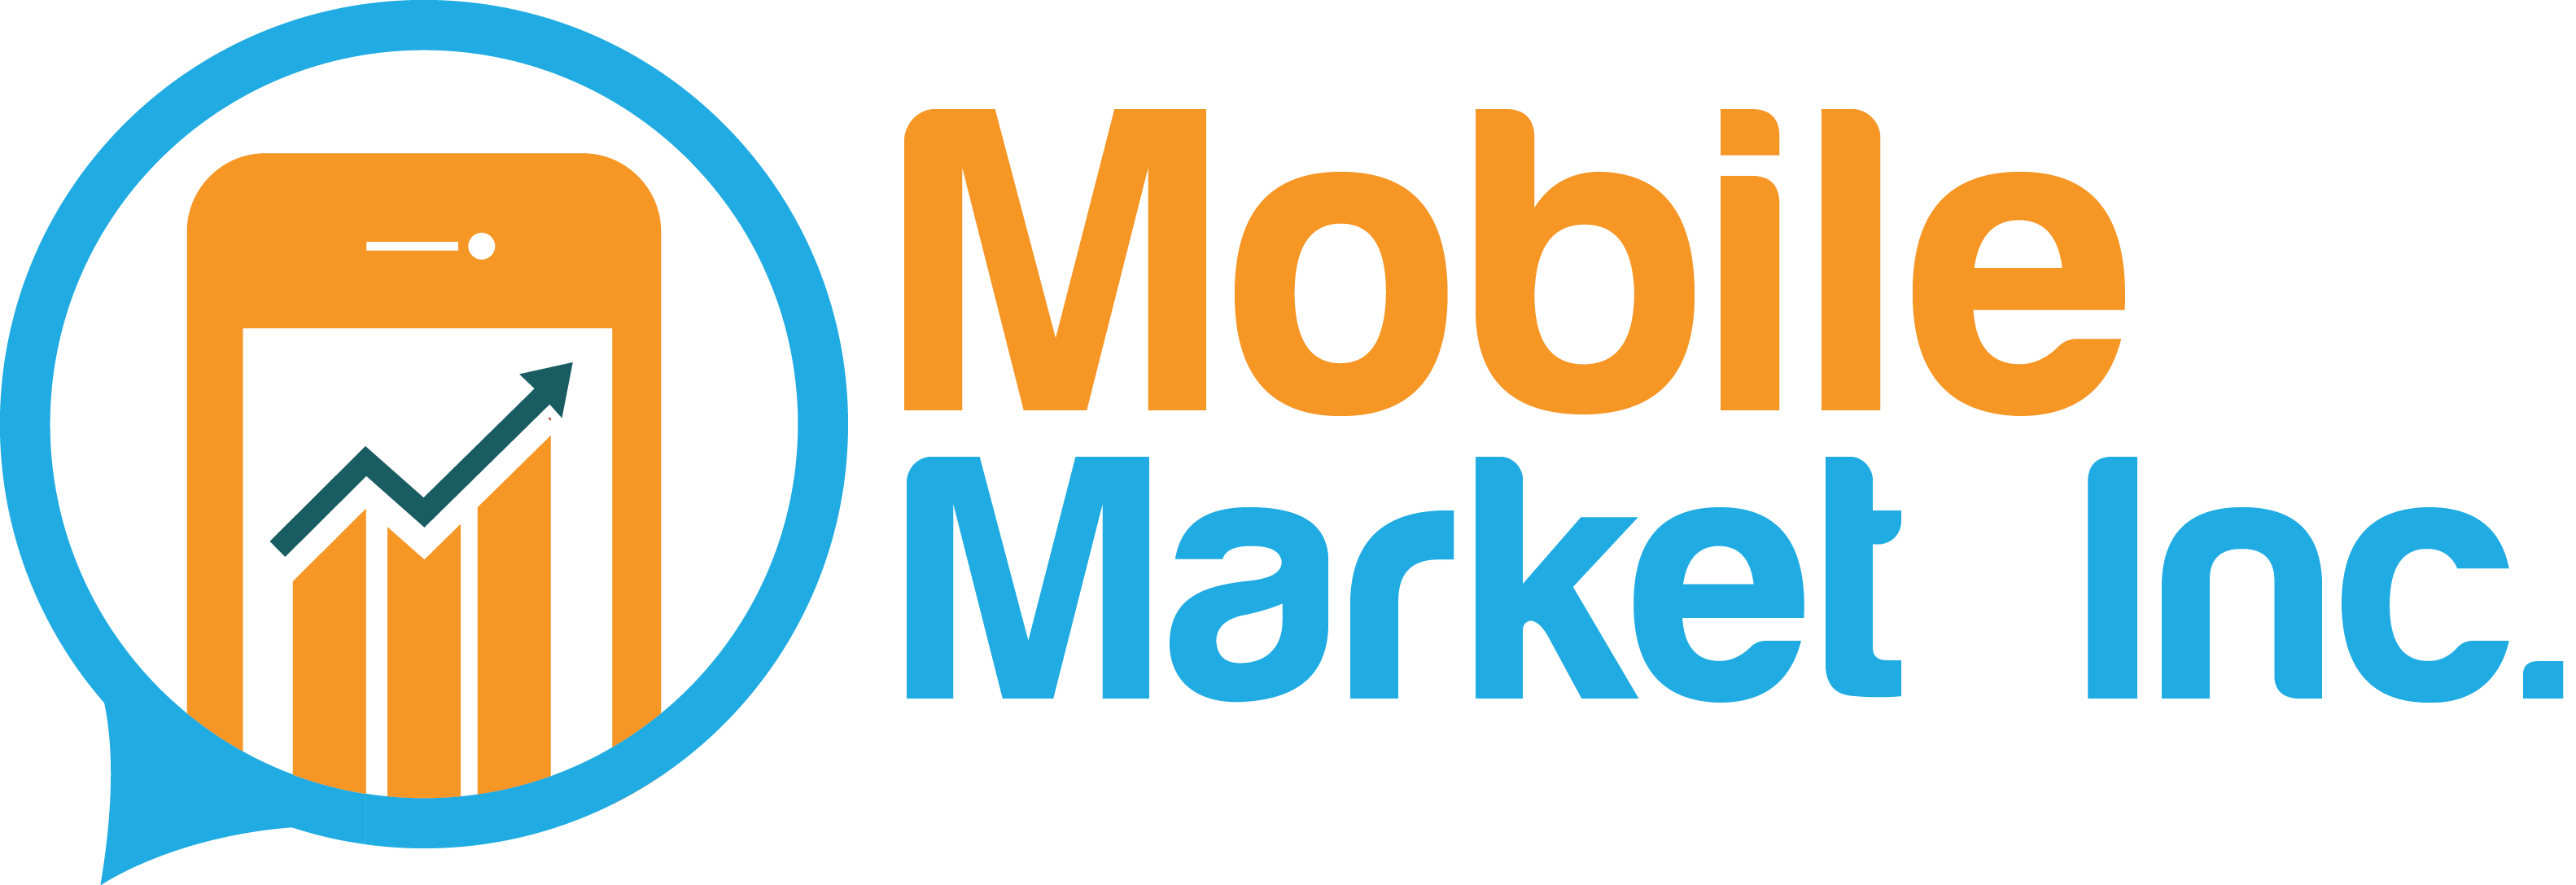 Mobile Market Inc